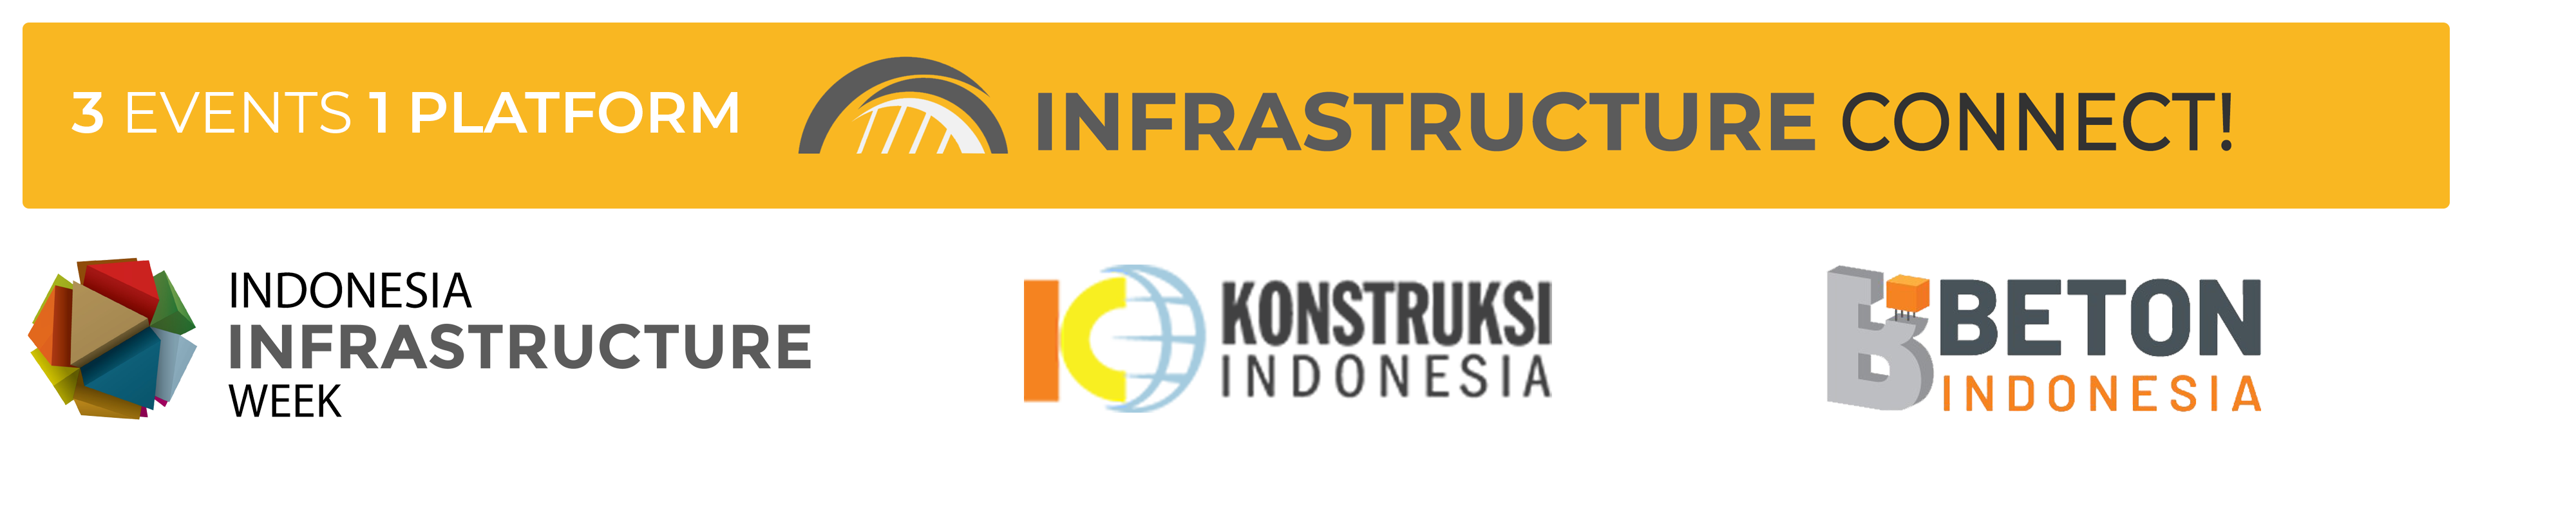 infrastructureconnect.id